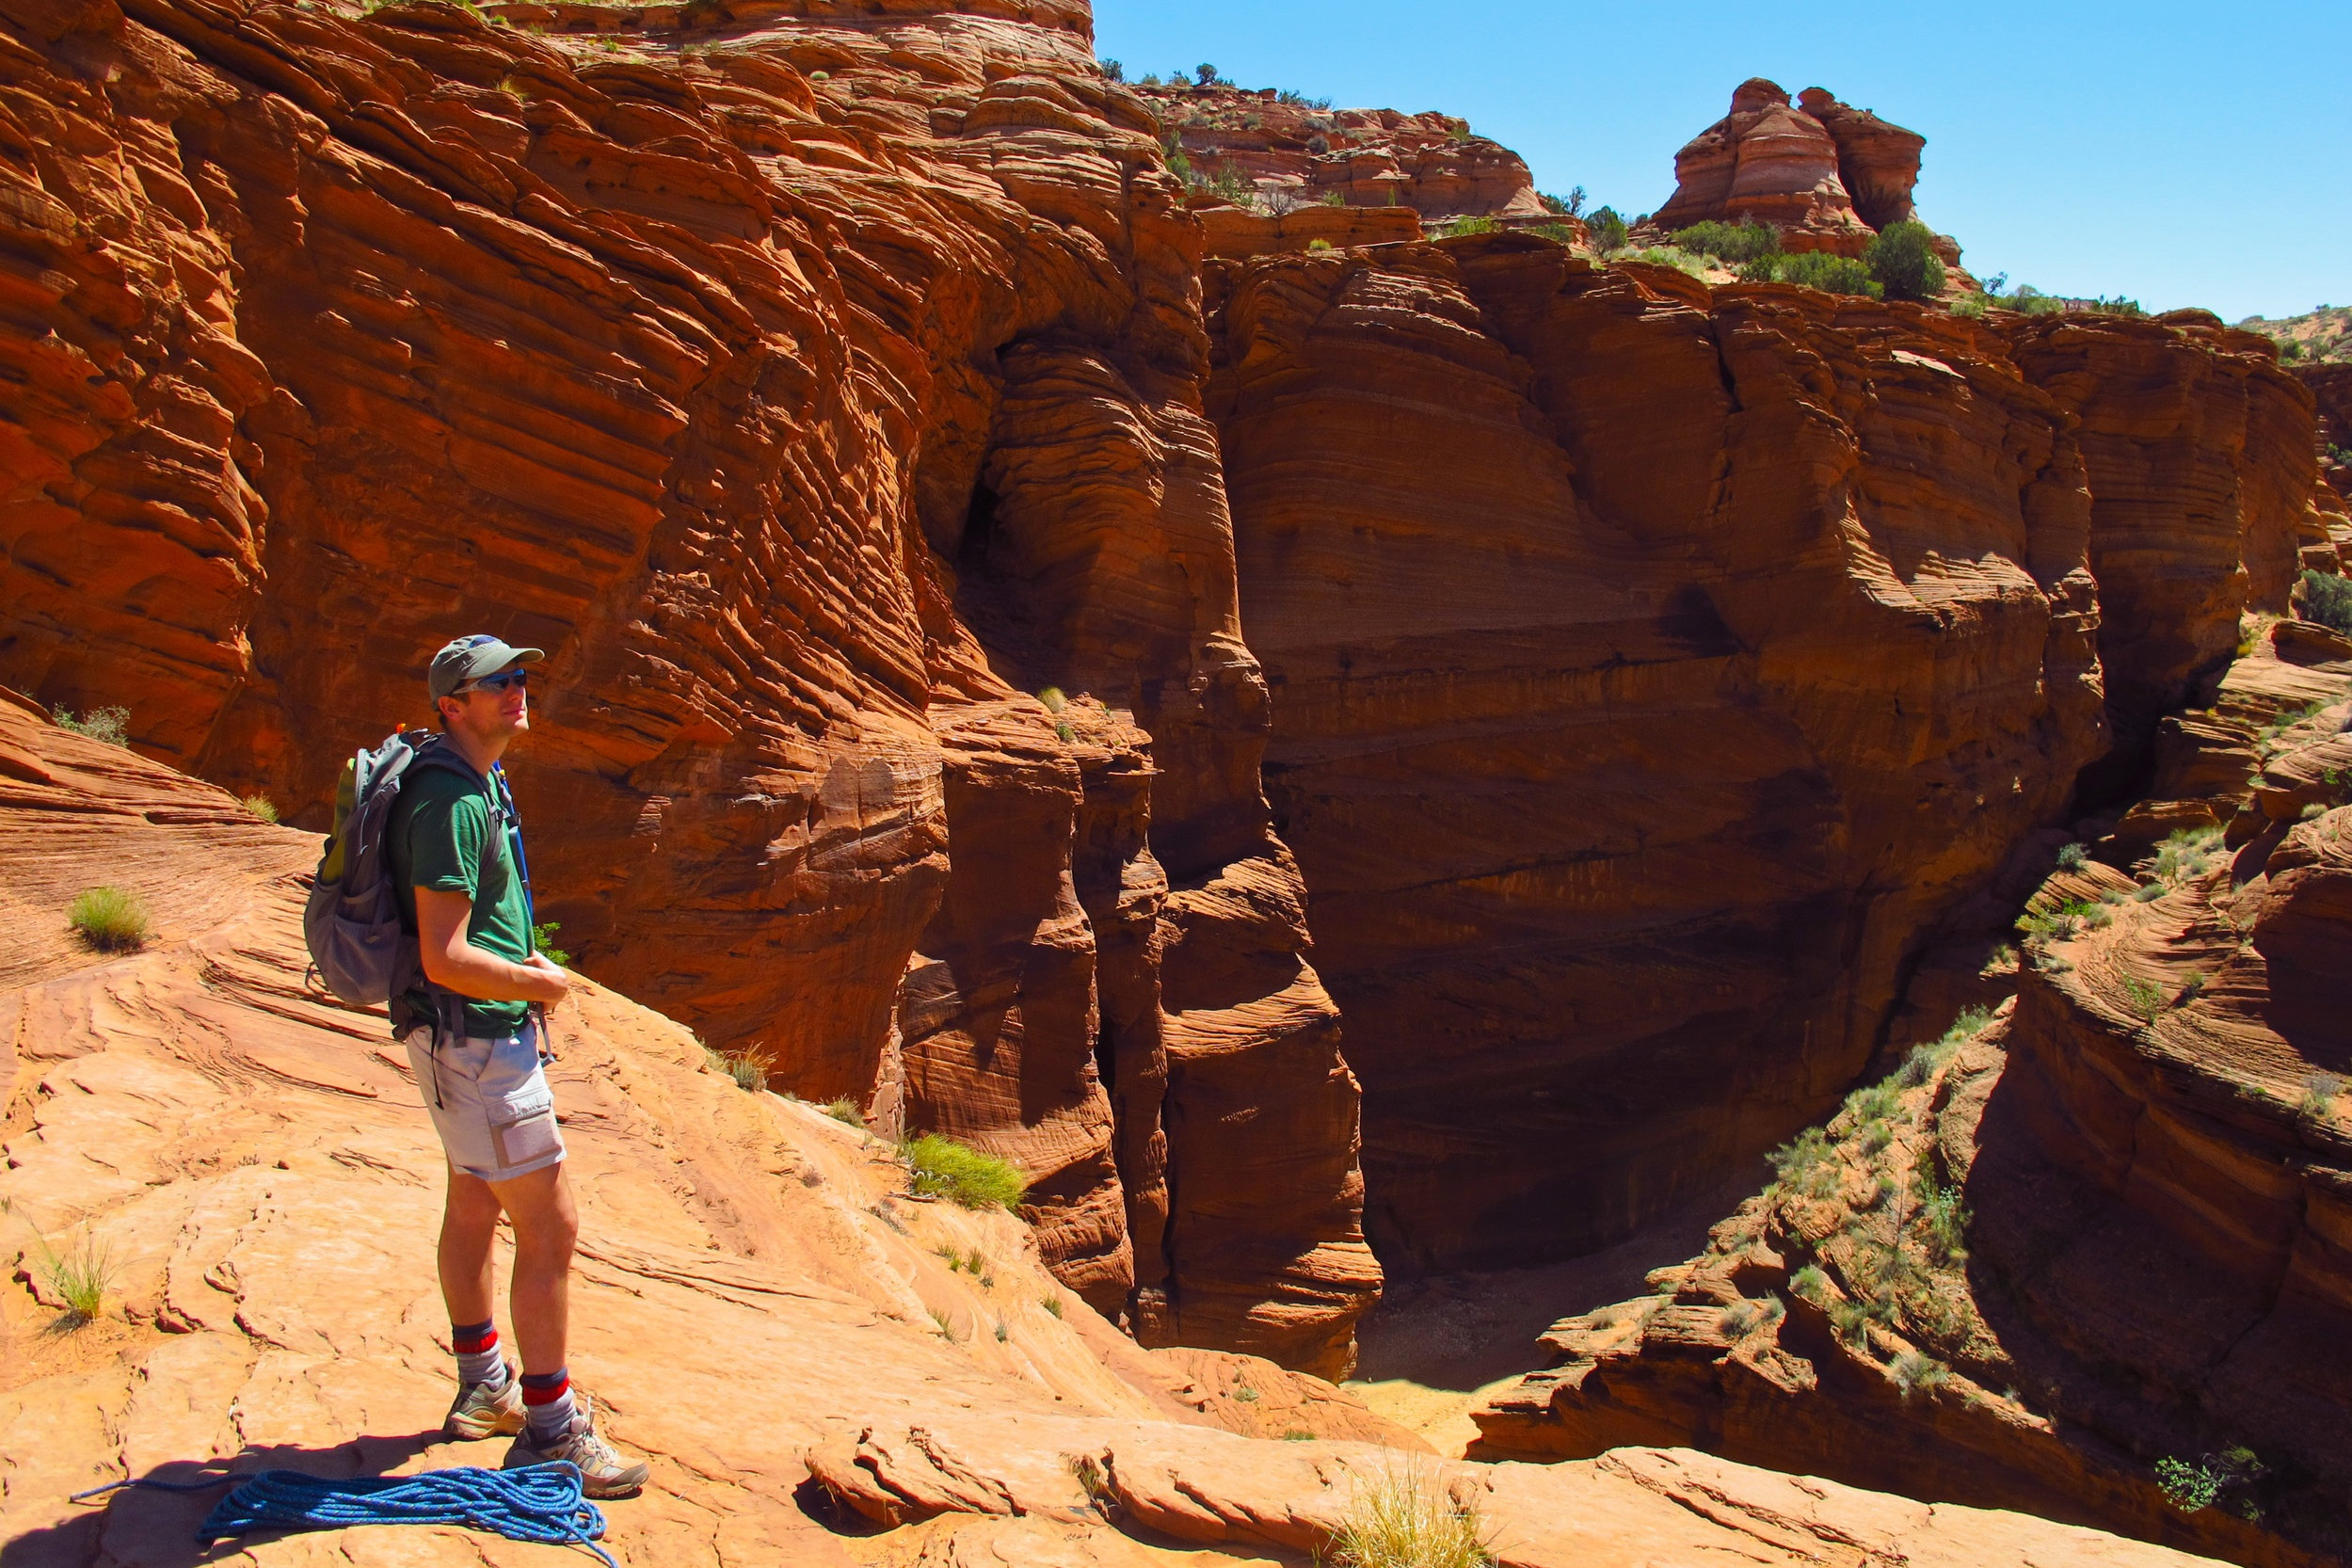 UTAH: A 48-hour canyoning adventure - Fast-paced fun in the American Southwest.Financial Times / How To Spend It, 2012.